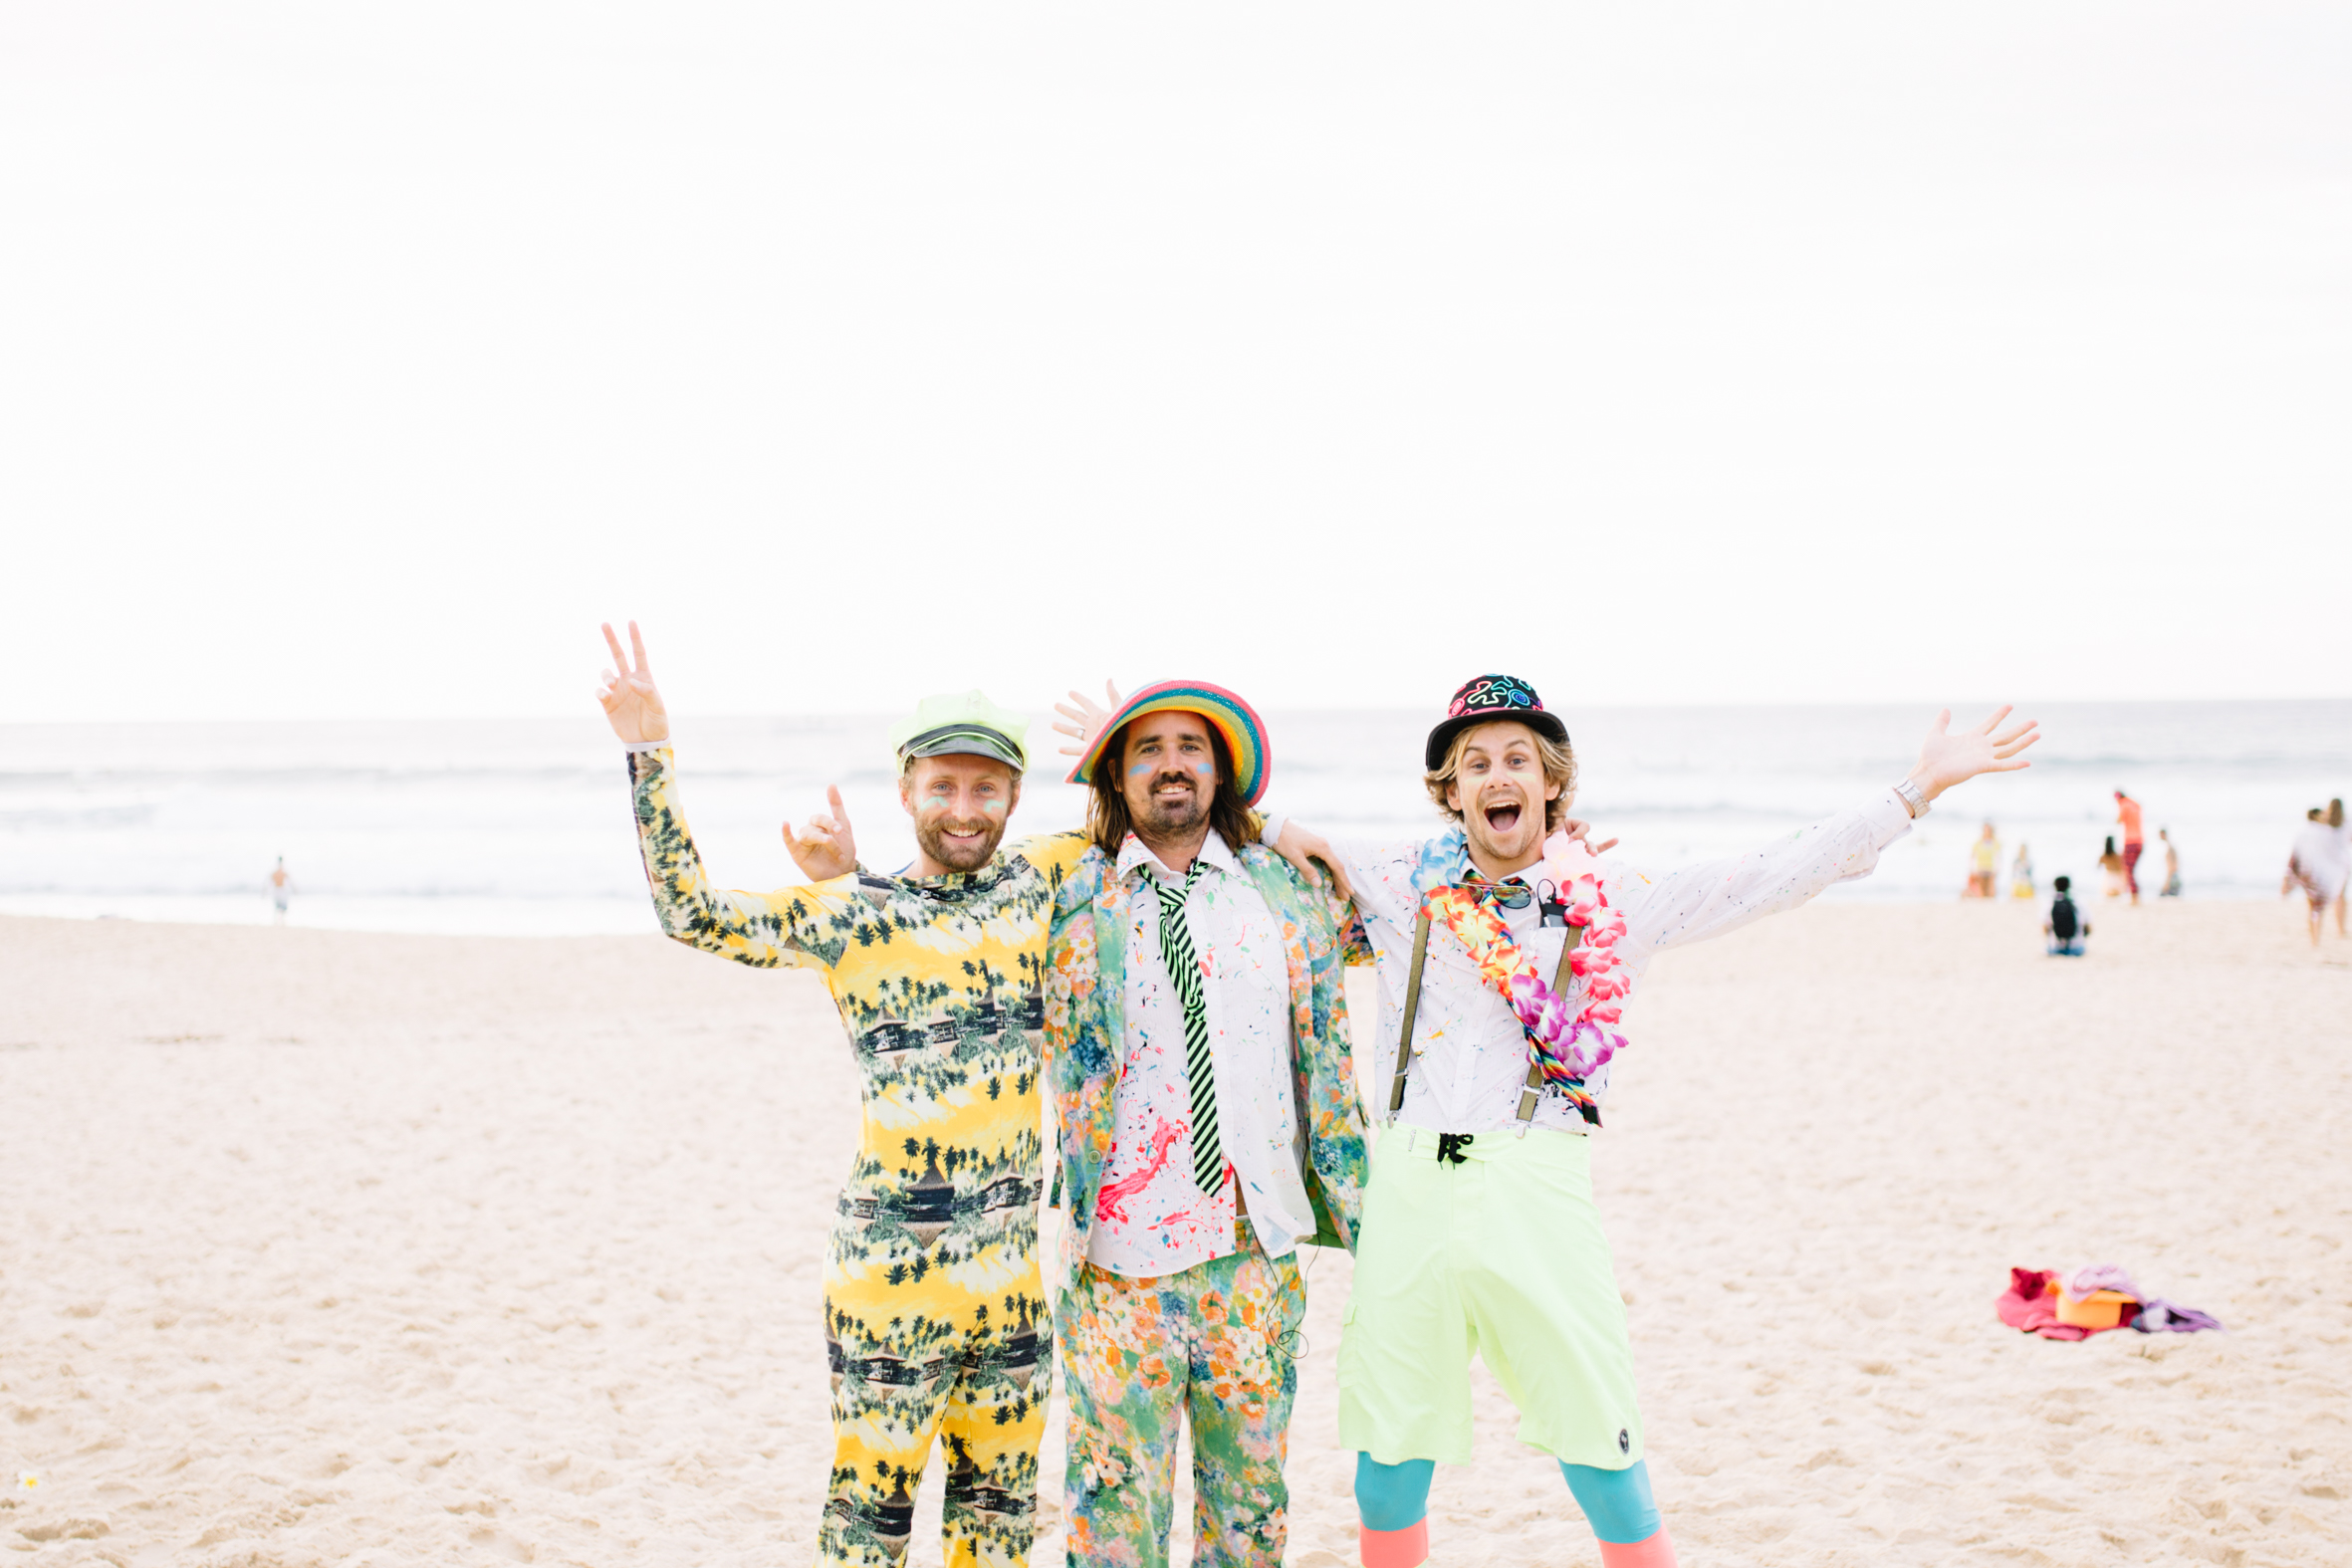 Left to right: Co-founder Sam Schumacher, Founder Grant Trebilco, OneWave Surfing Experience Manager...